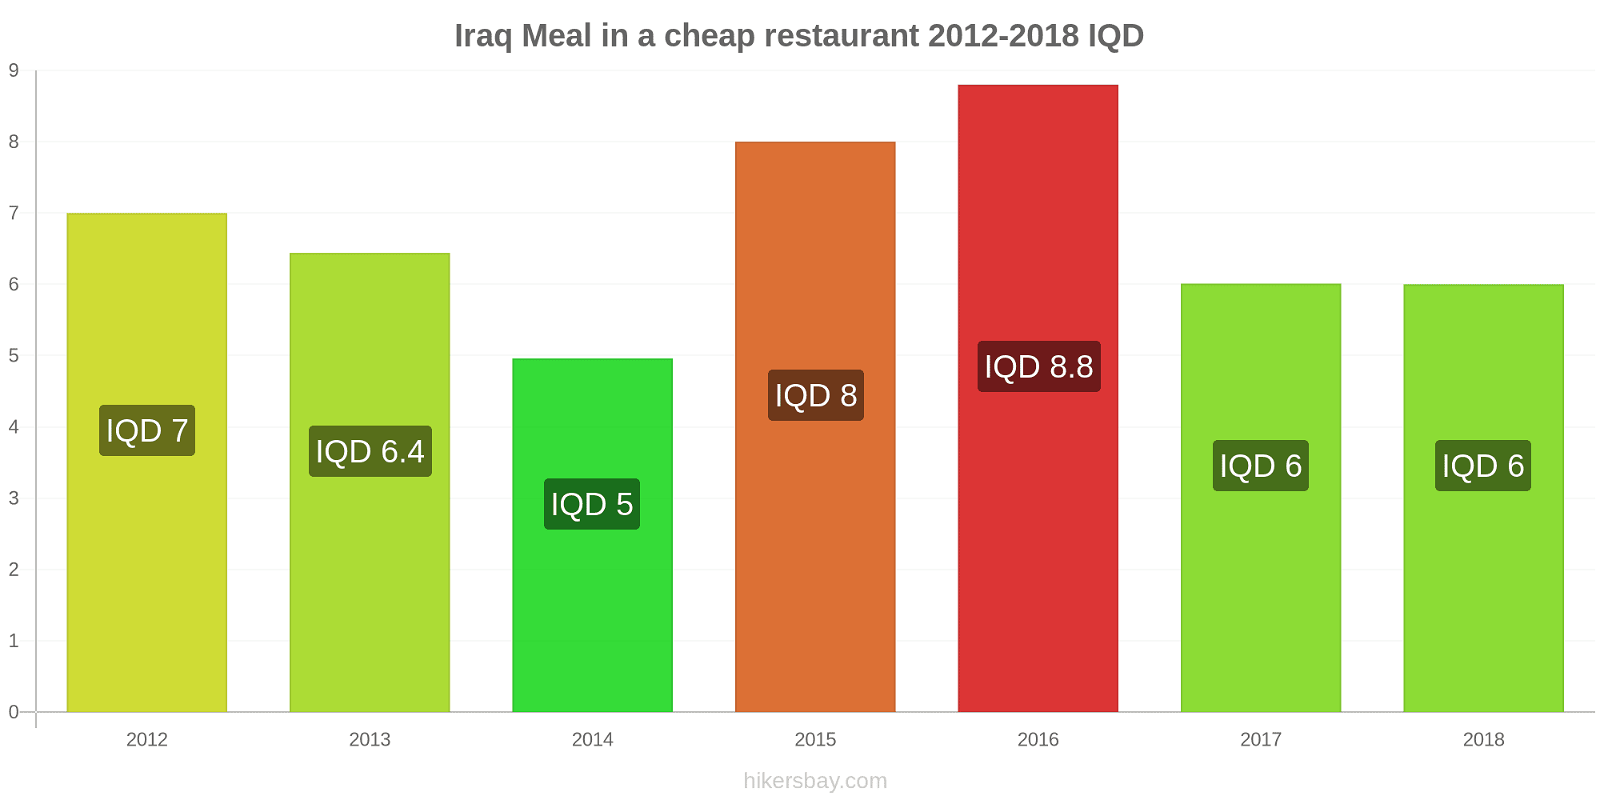 Iraq price changes Meal in a cheap restaurant hikersbay.com